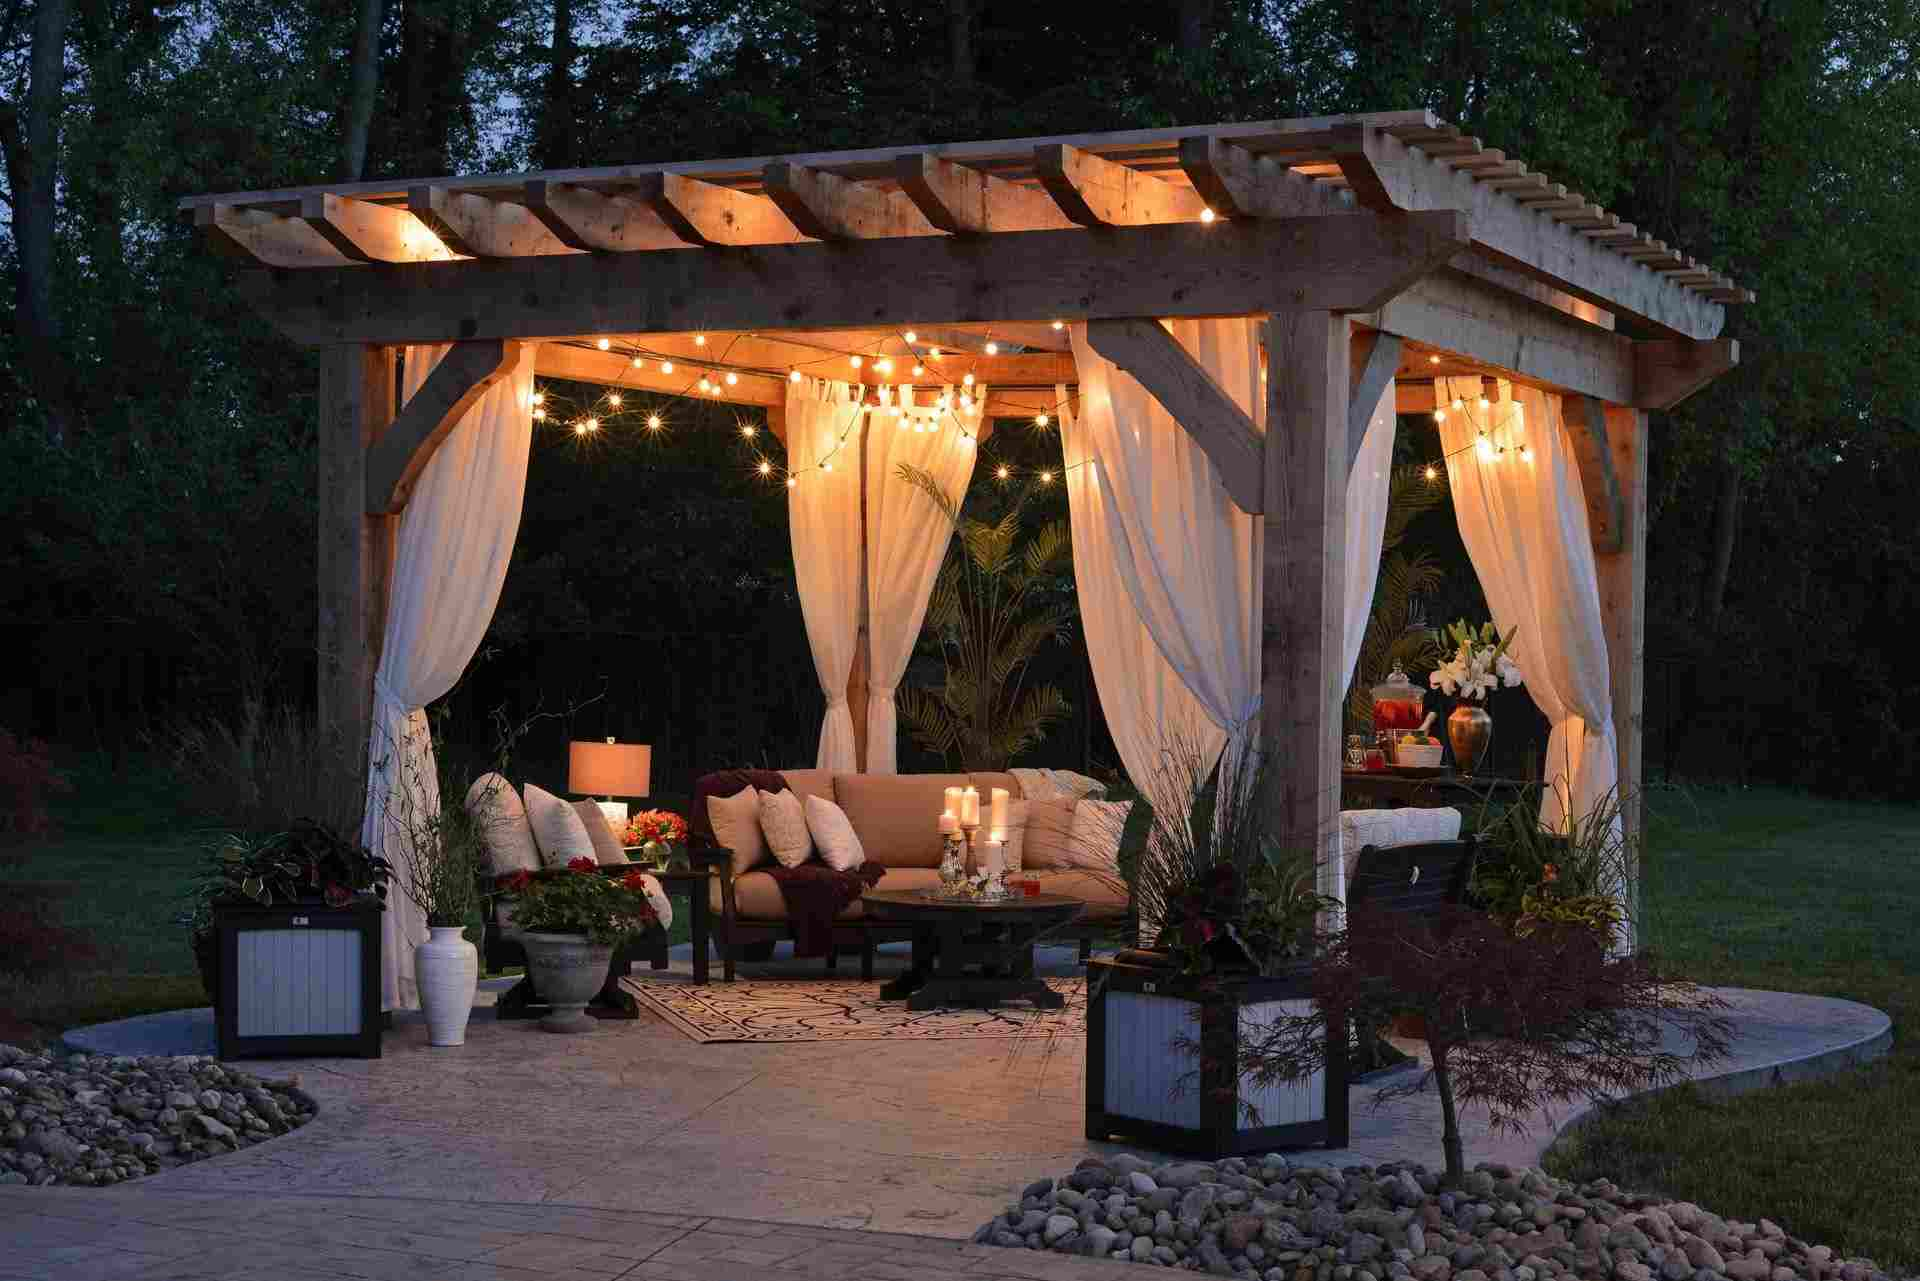 A backyard pergola complete with lights, curtains, seating, and plants.